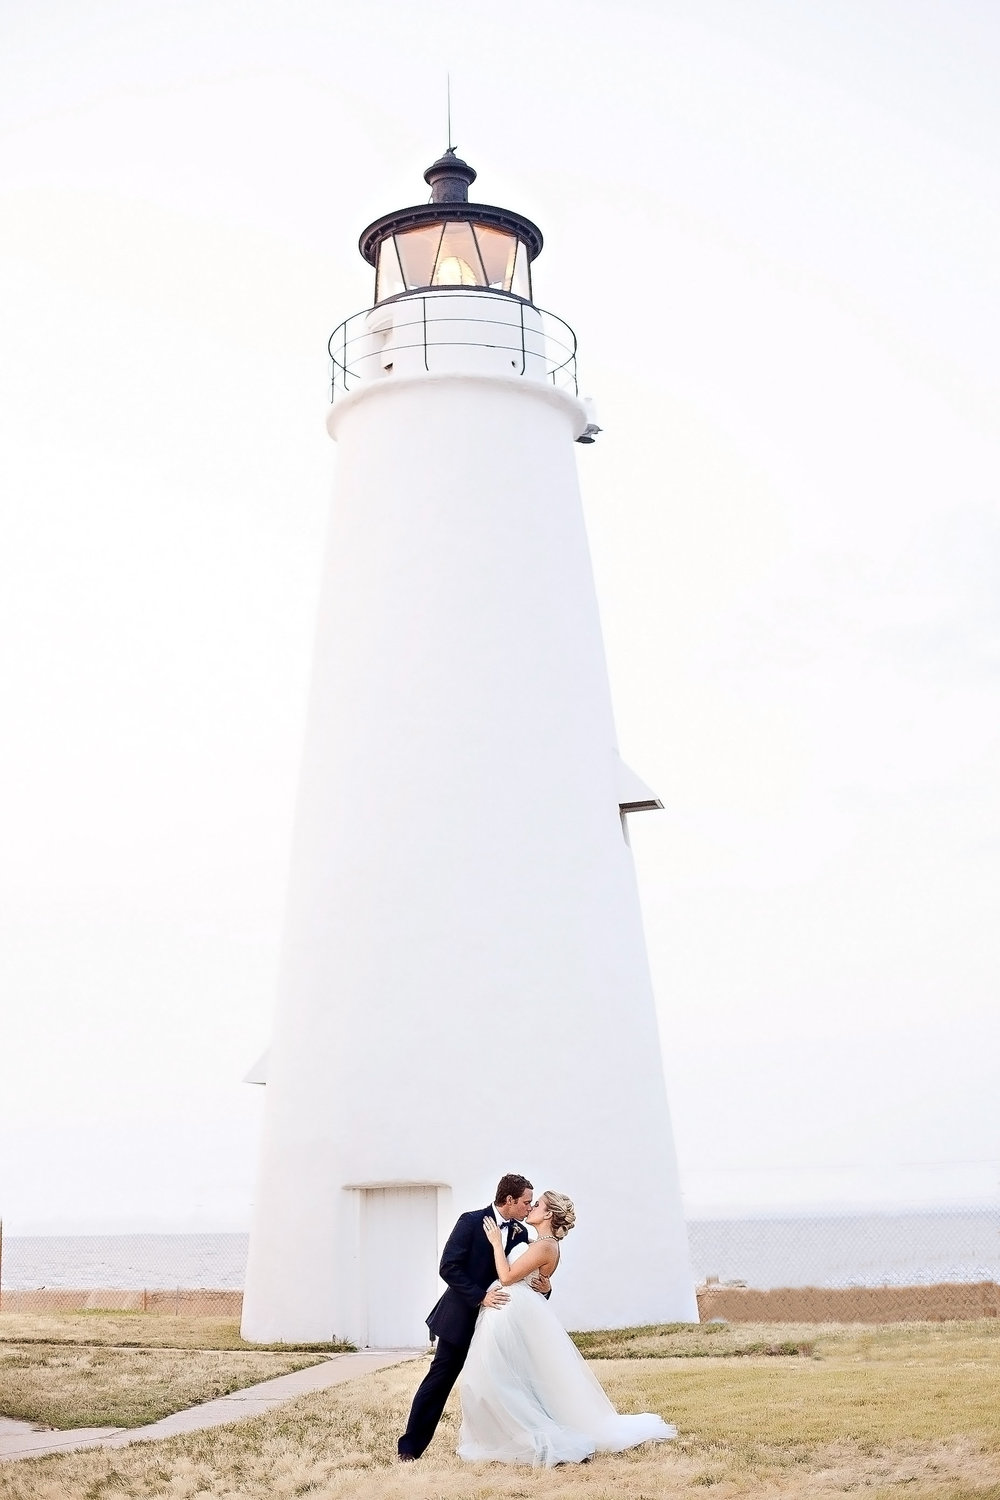 Cove Point Lighthouse Style Shoot-Final Edited Images-0196.jpg